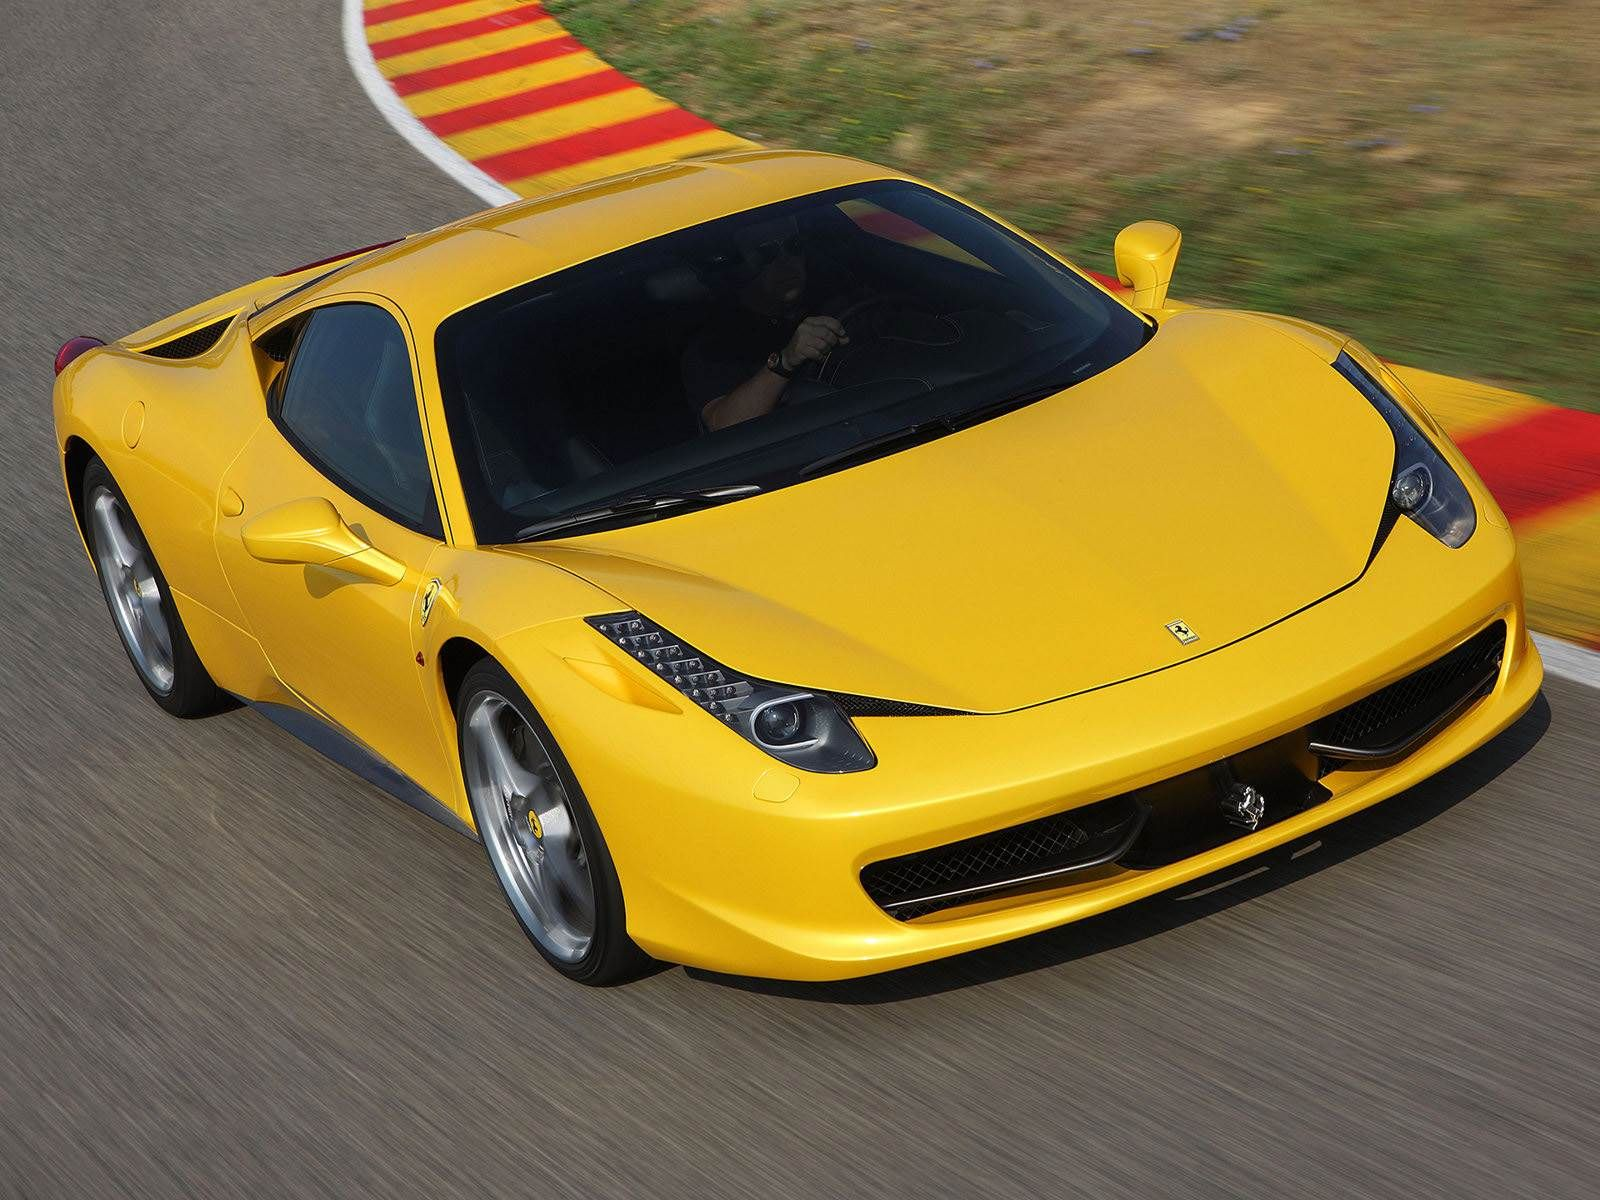 Ferrari Hd Clipart P ClipartFox 1600×1200 Black Ferrari Cars Wallpapers |  Adorable Wallpapers